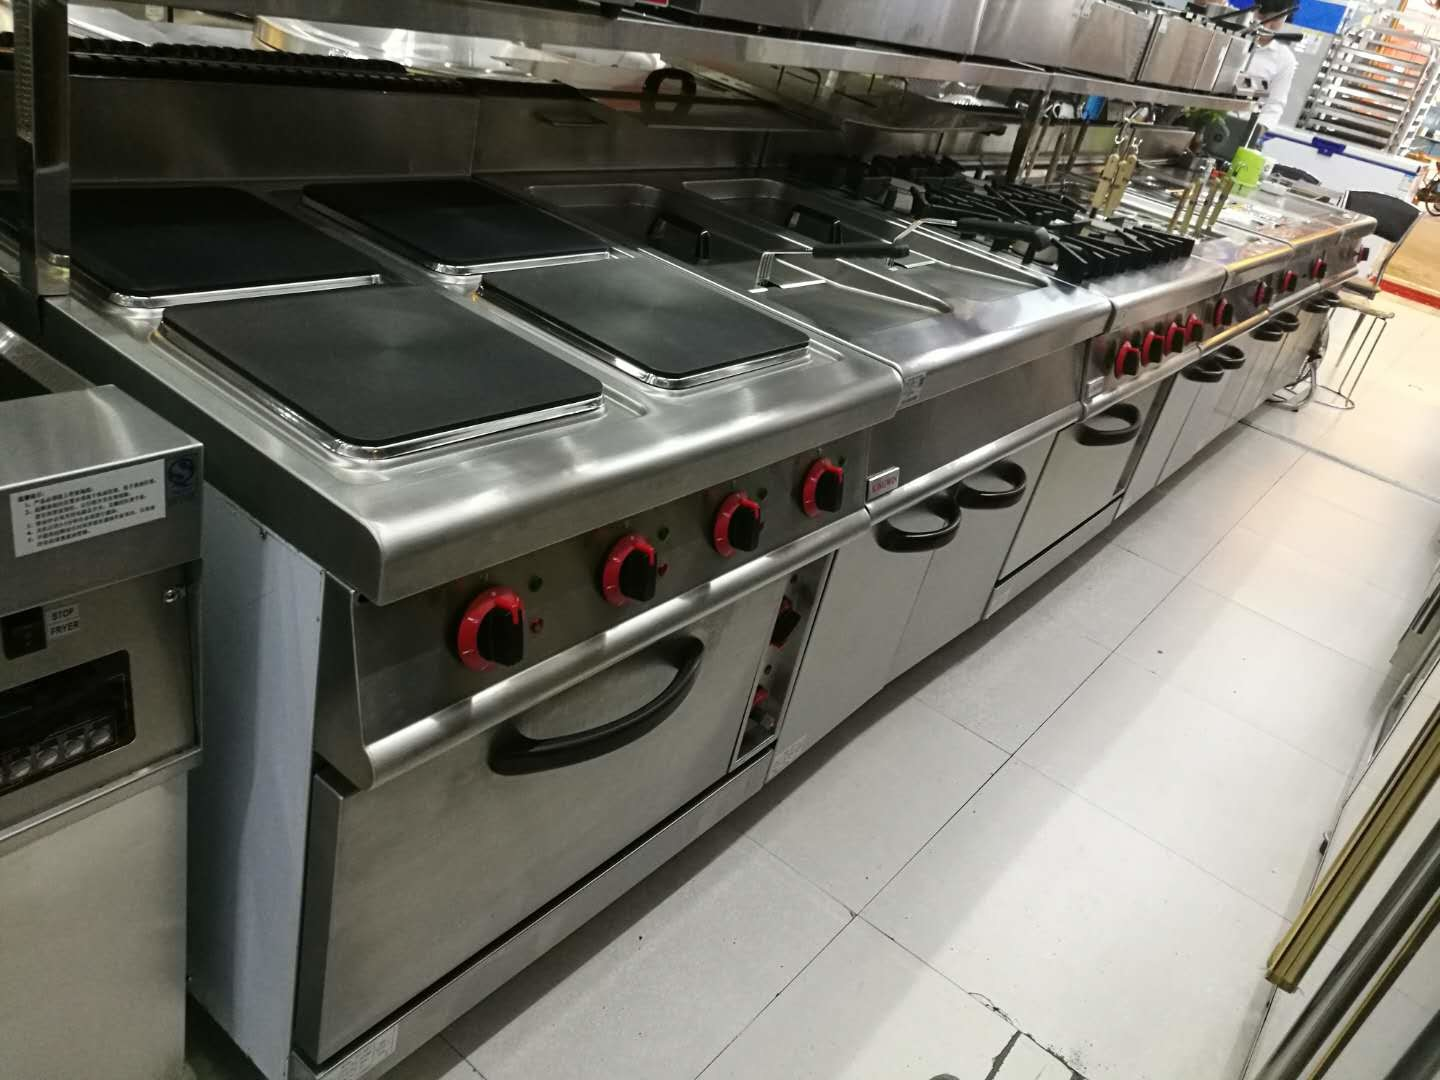 Western Kitchen Equipment Commercial Gas Stove 4 Burner With Down Oven 700 700 850 70mm